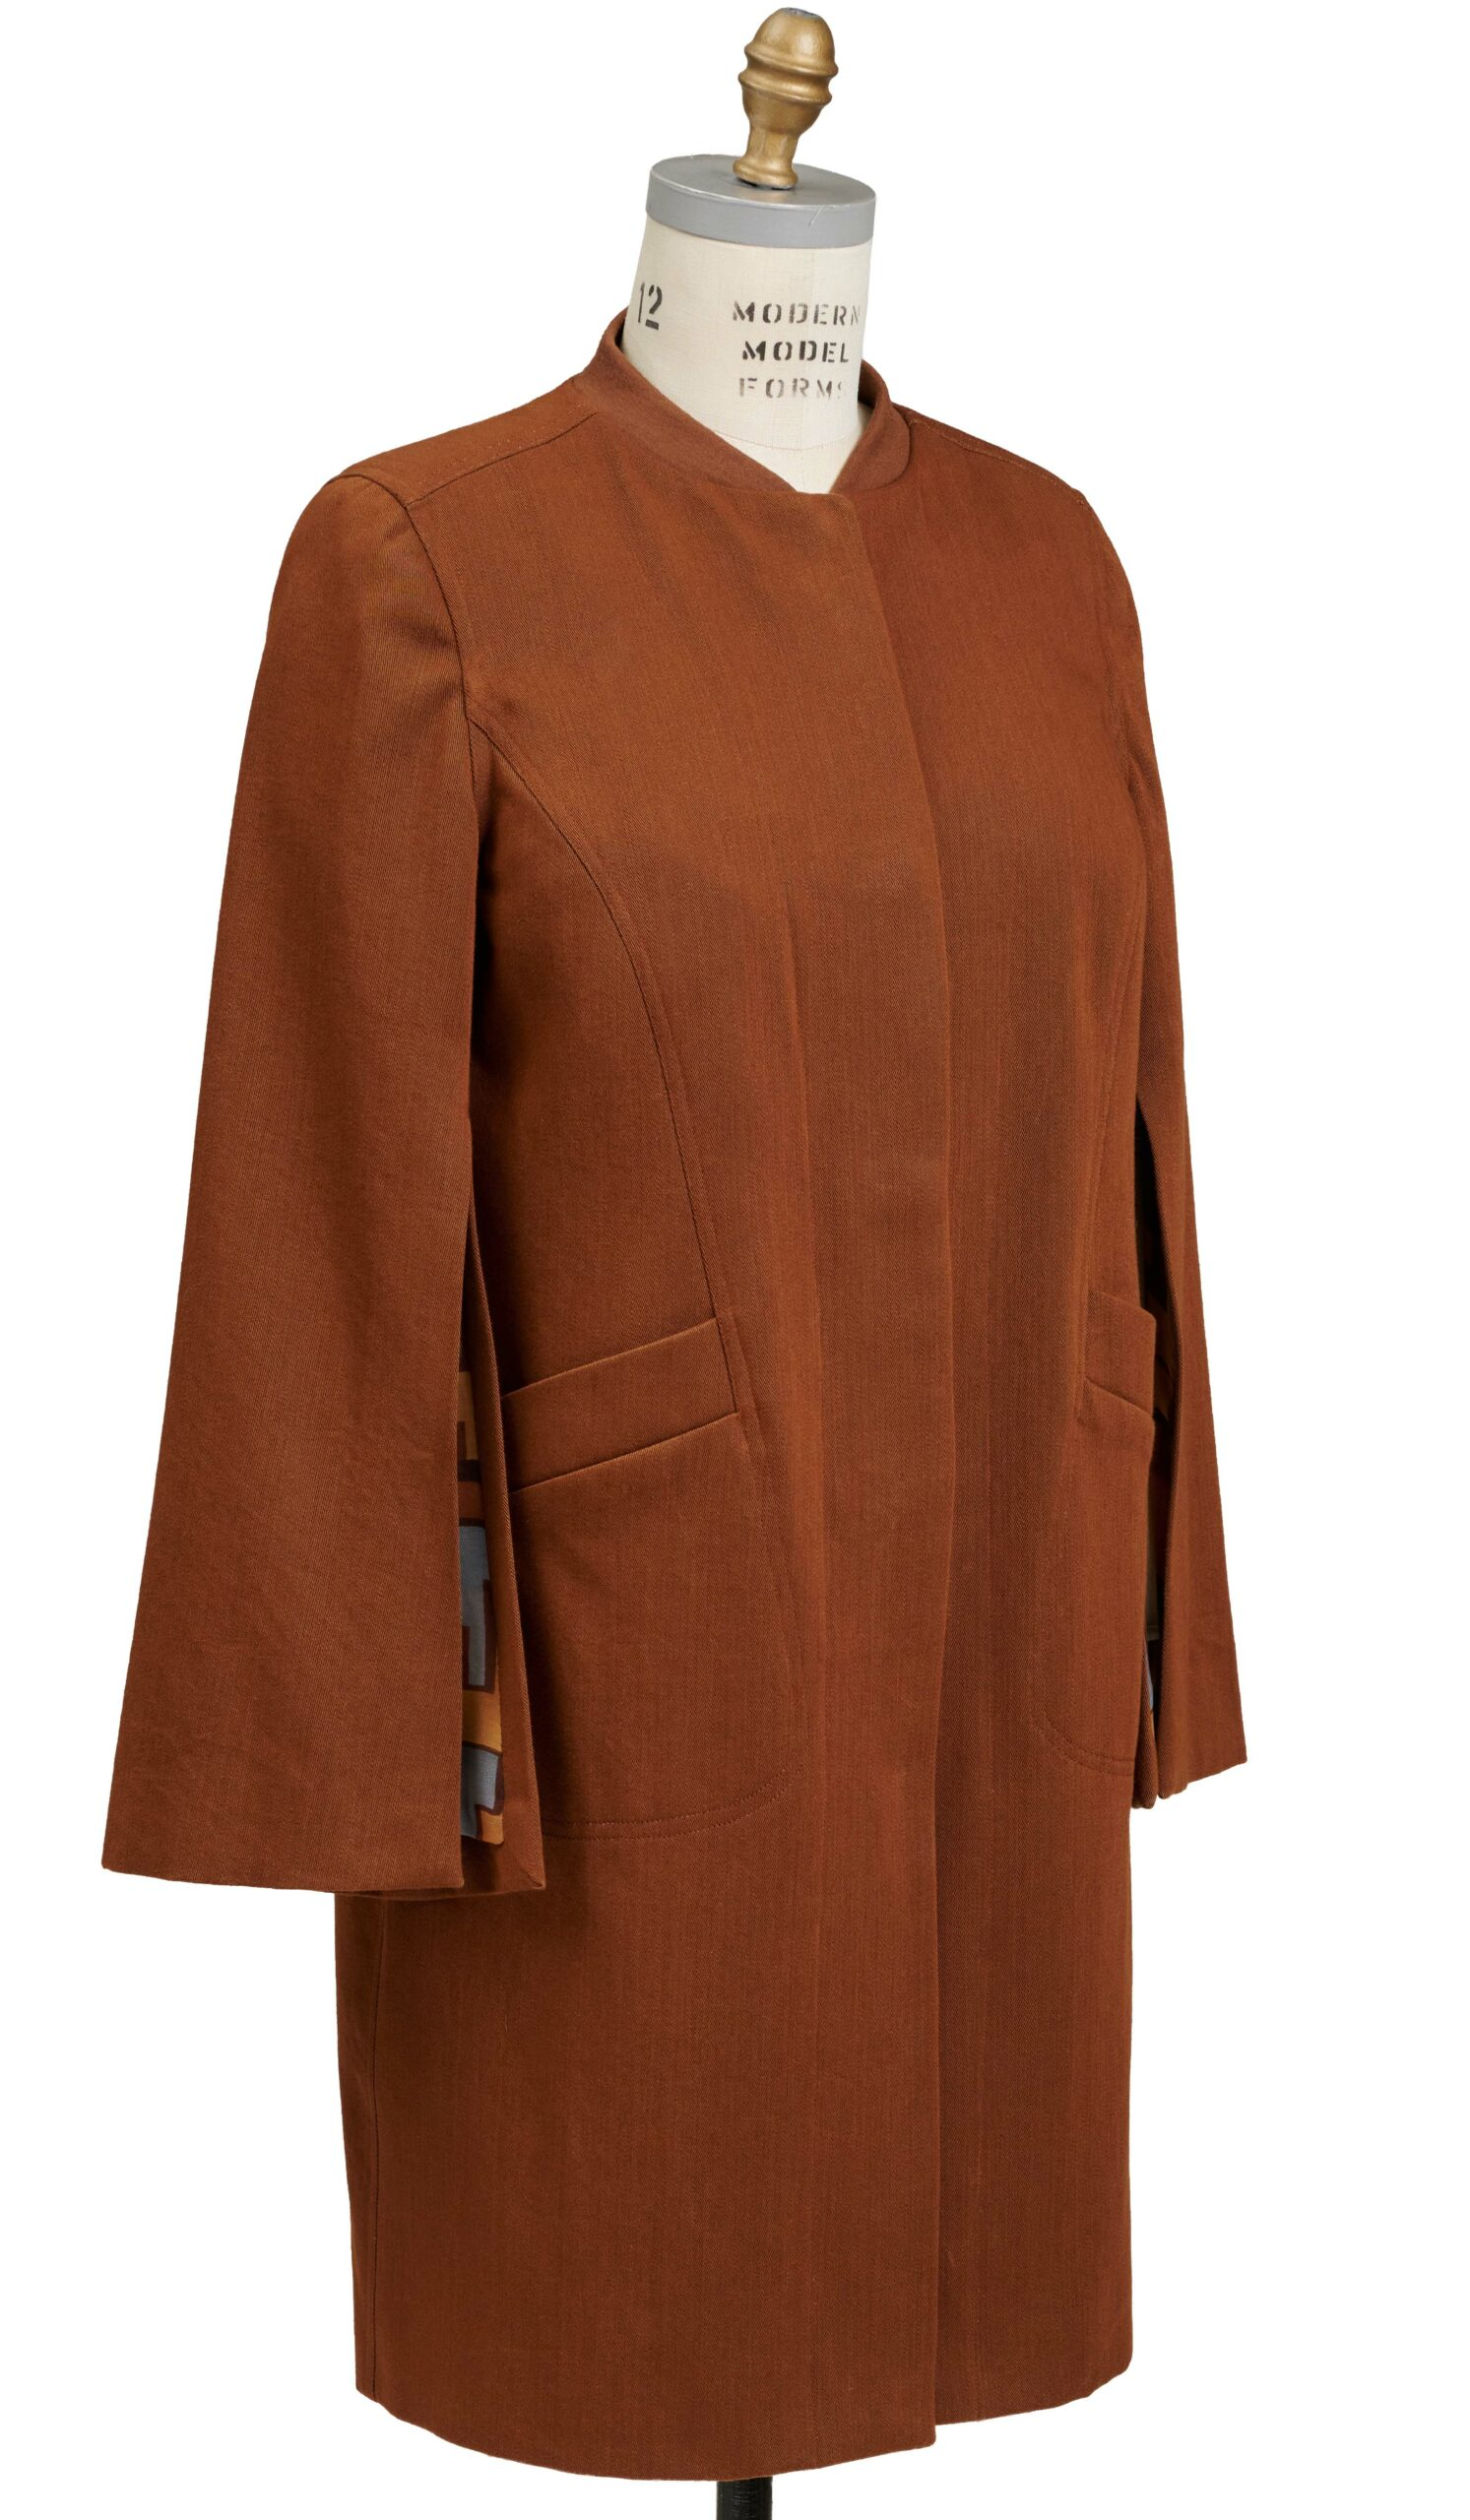 Brown coat on a dress form with hidden buttoning down the center front